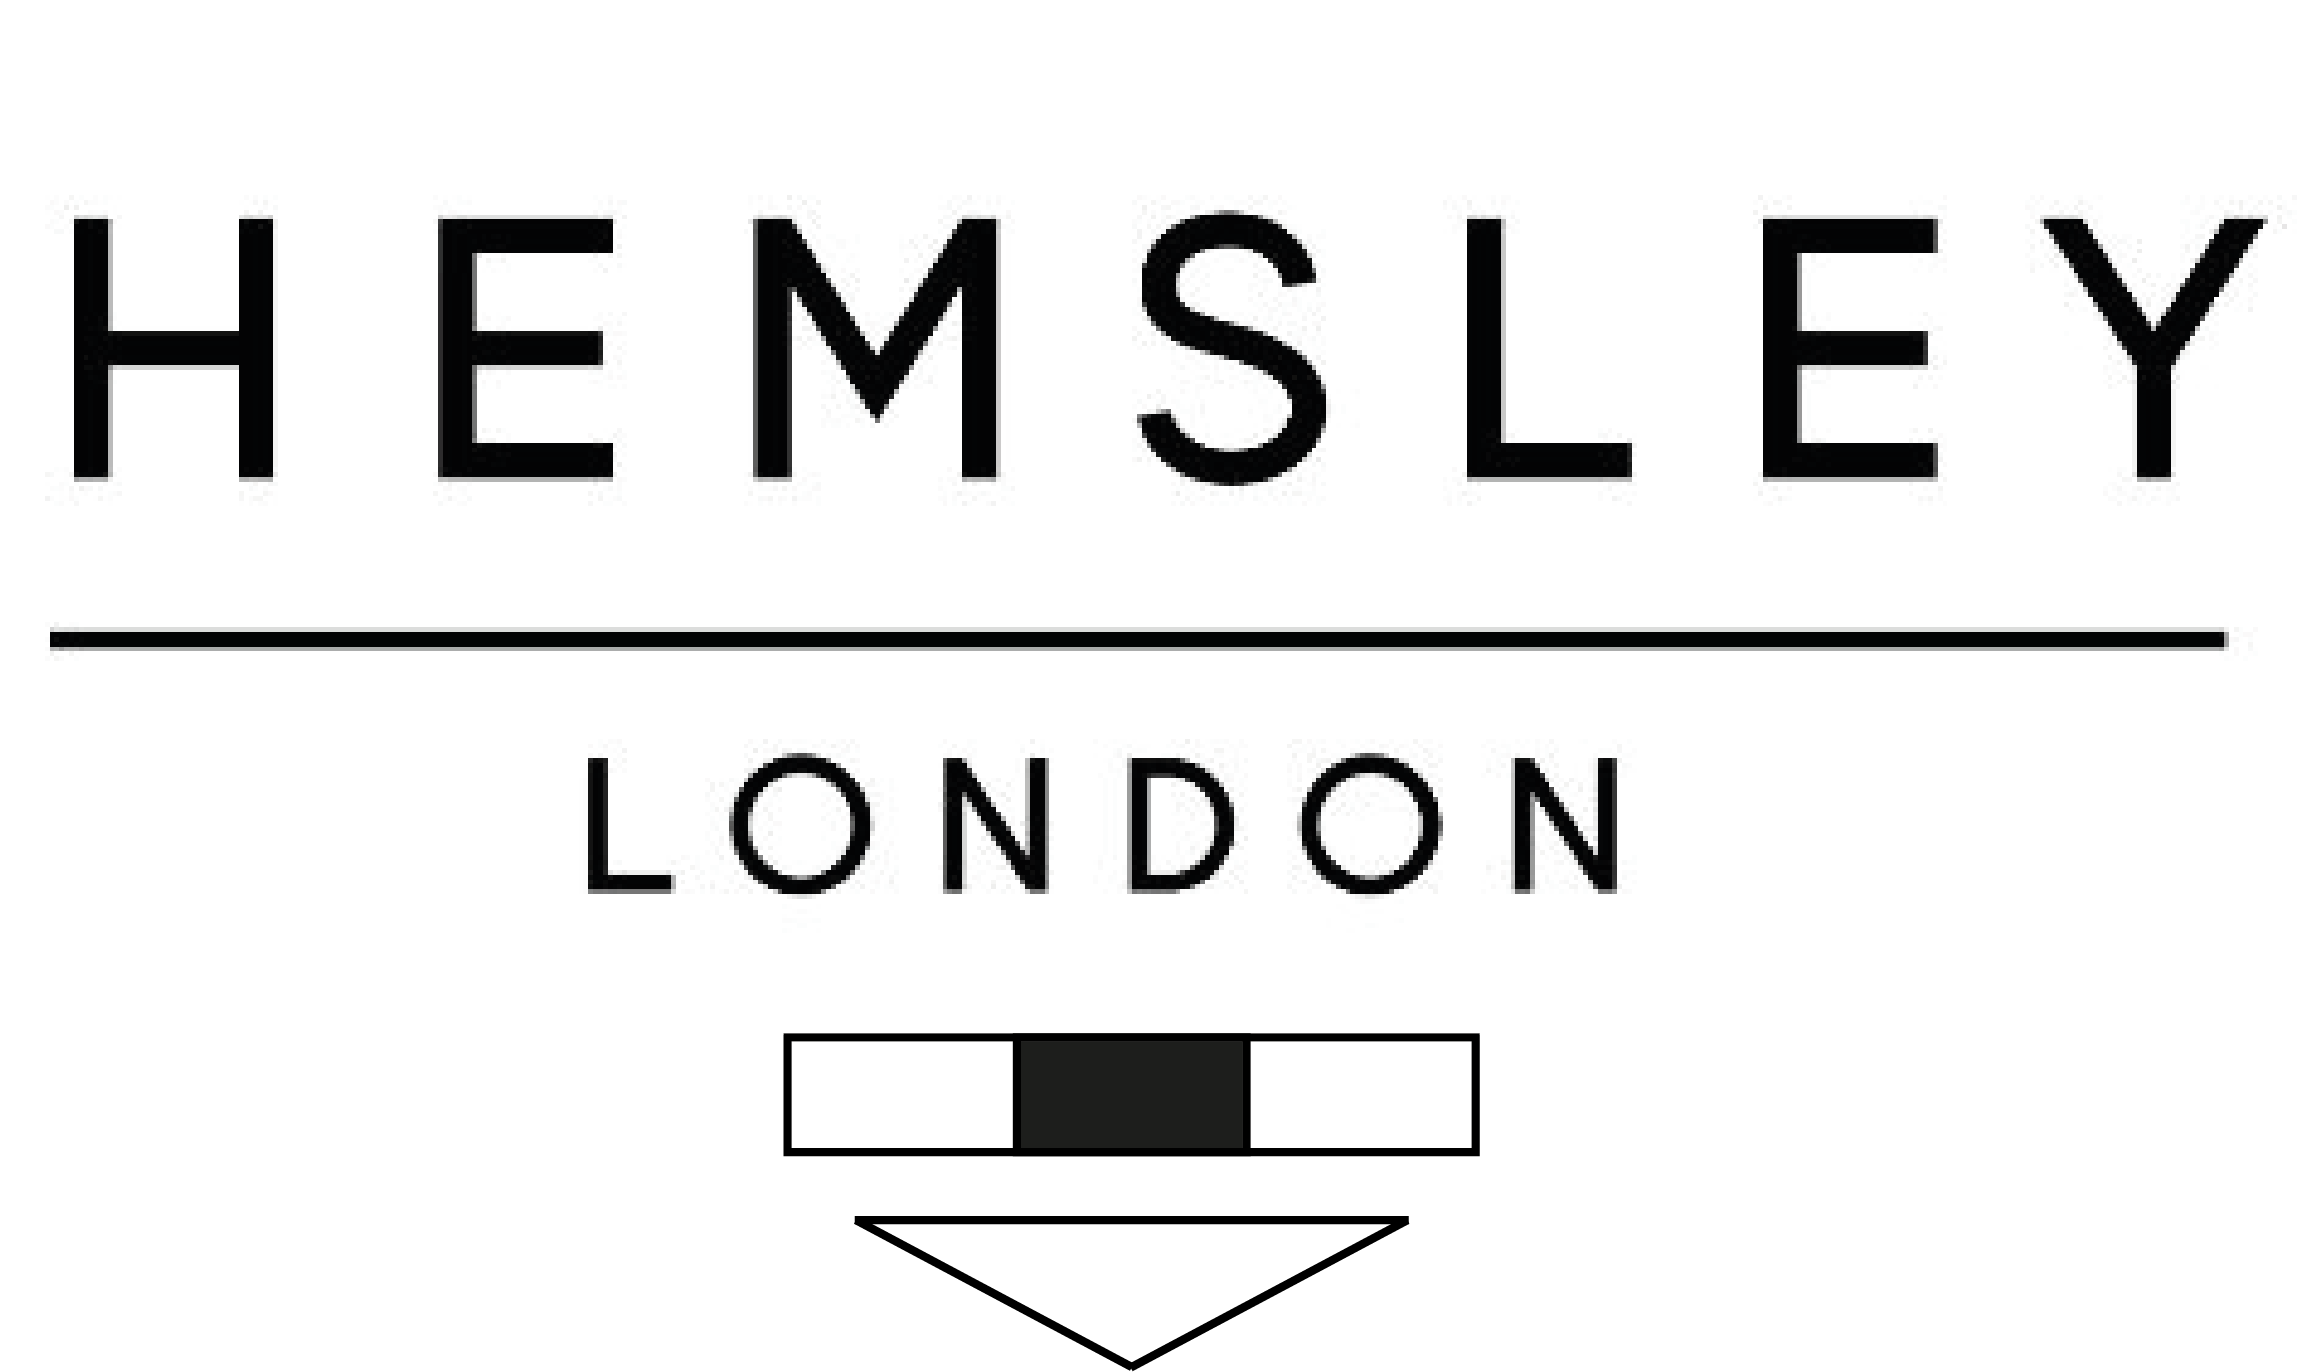 Hemsley london